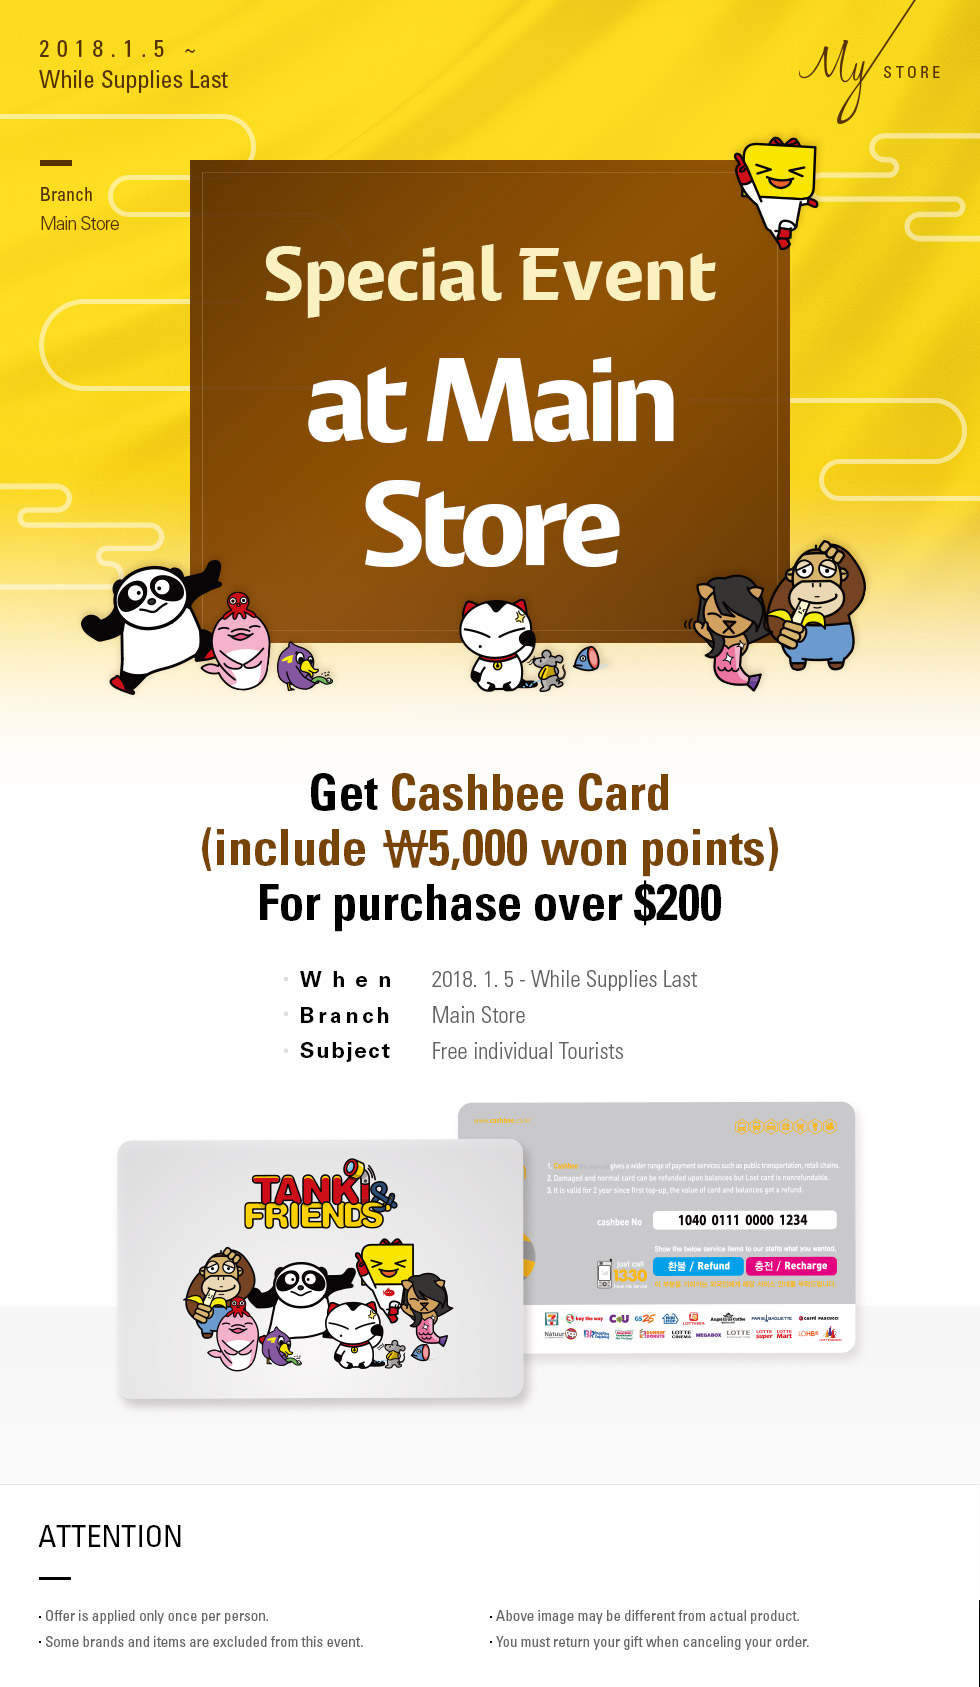 Special Event at Main Store